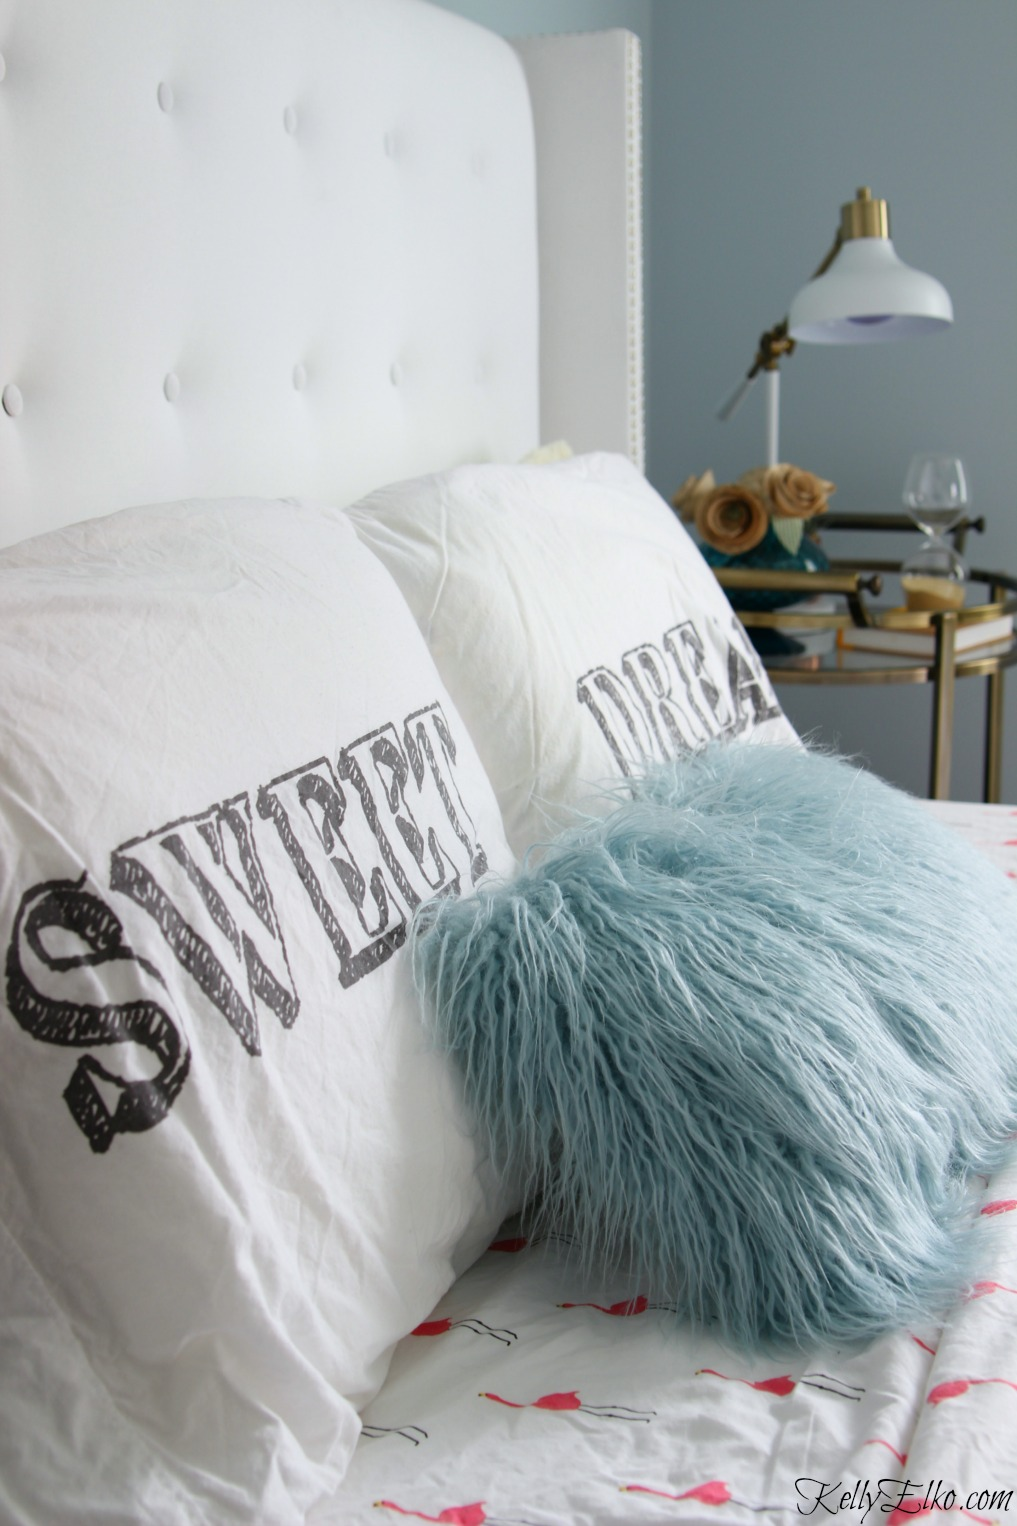 Love this glam tufted white headboard and fun mix of pillows and bedding kellyelko.com